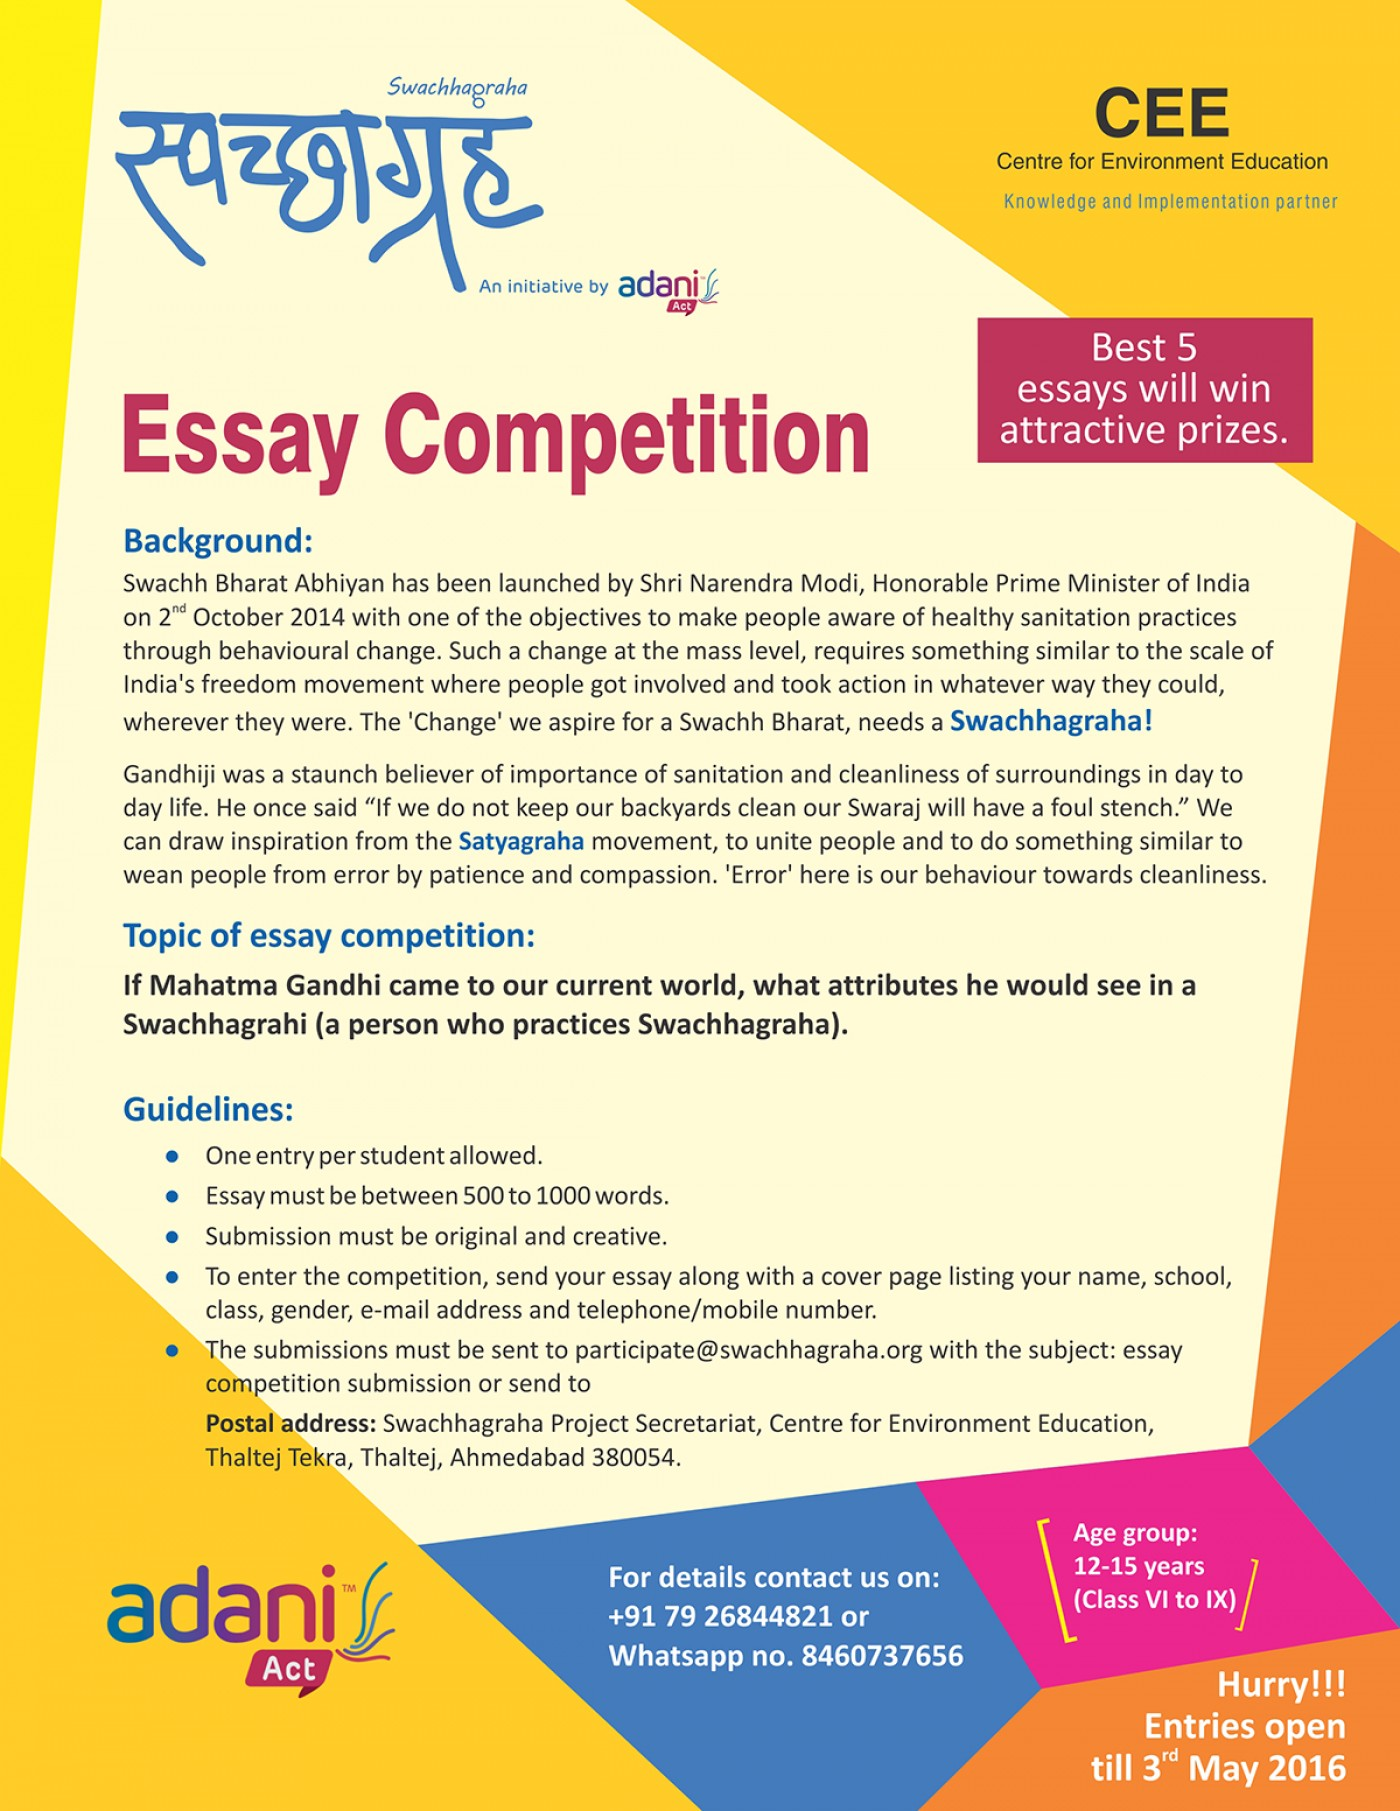 011 20180129171946essay20competition Essay About Cleanliness In School Phenomenal Writing On Premises 1400